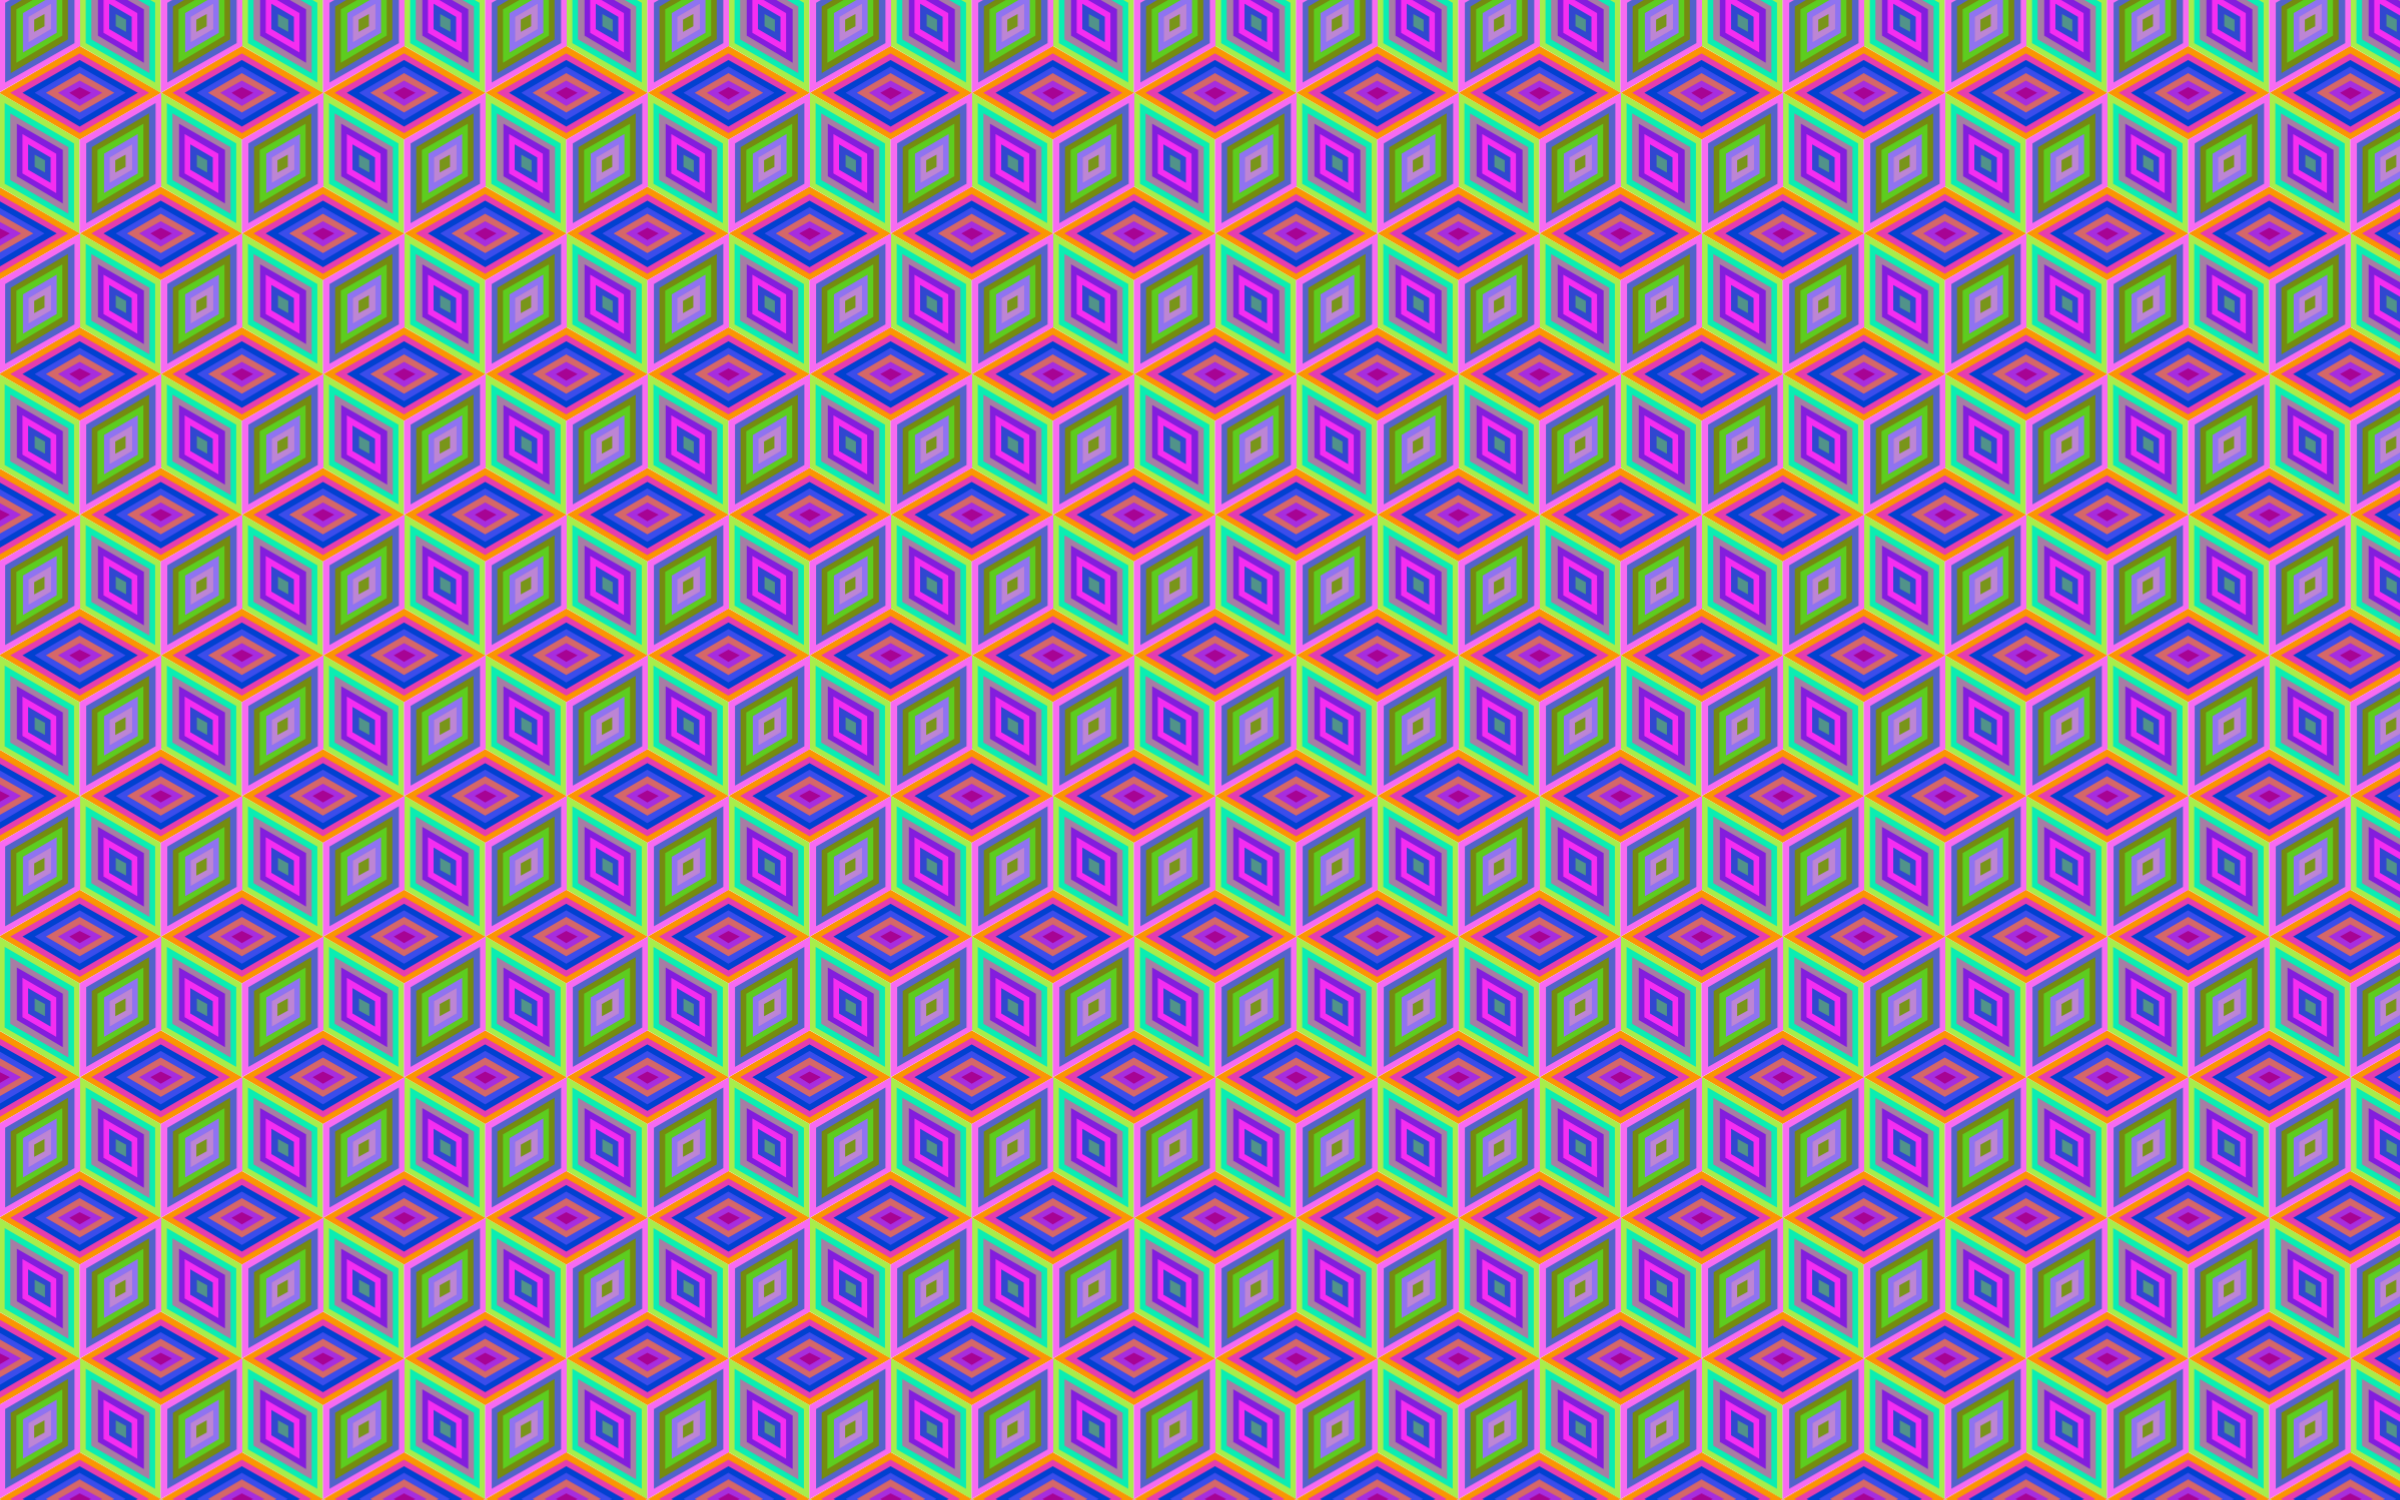 Seamless Prismatic Isometric Cube Pattern by GDJ